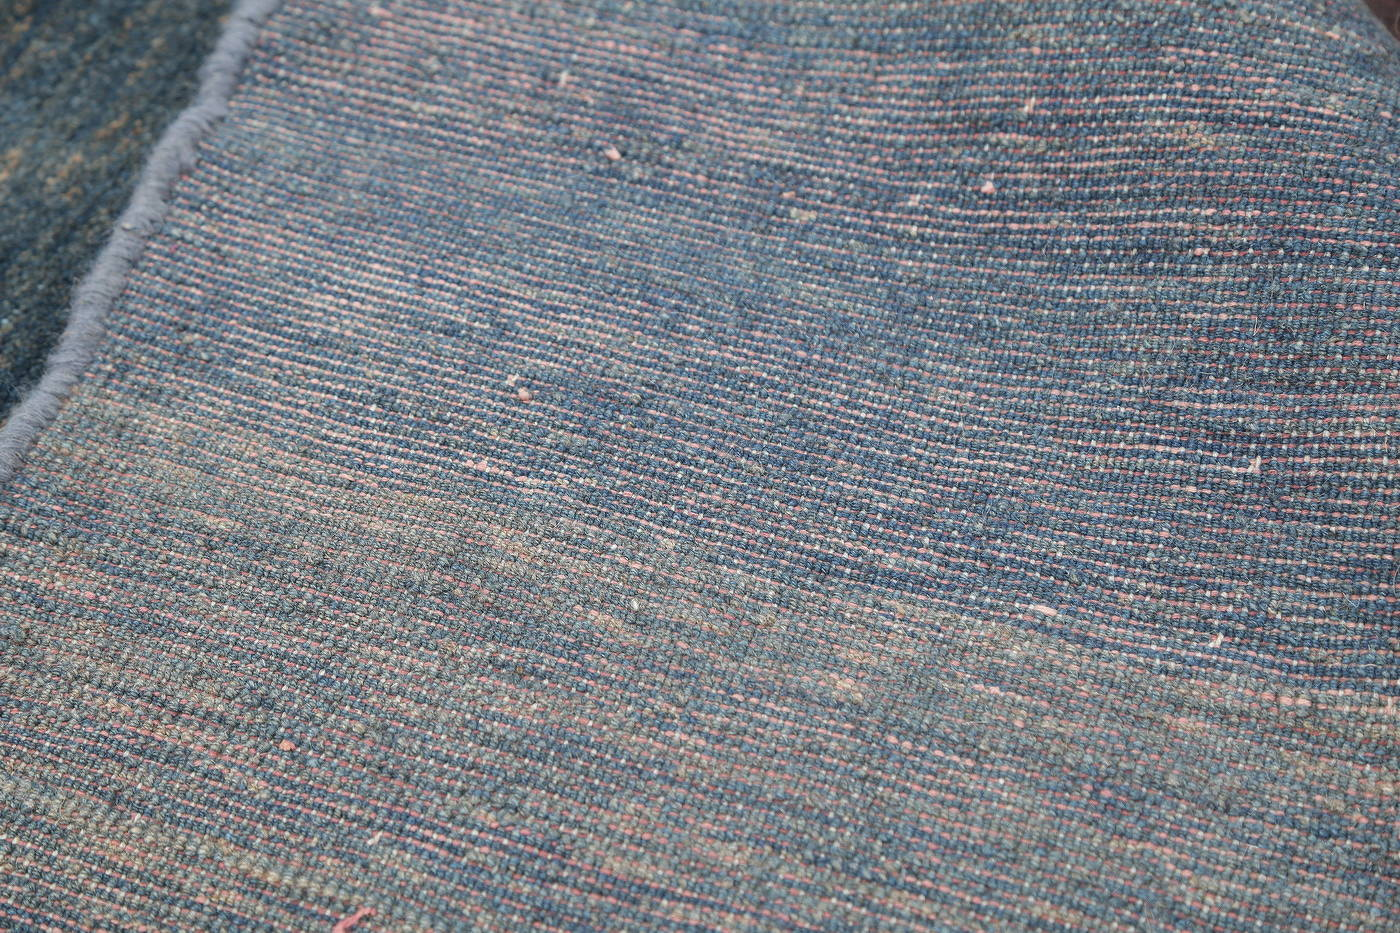 Hand-Knotted Blue Contemporary Gabbeh Zollanvari Persian Rug Wool 3x5